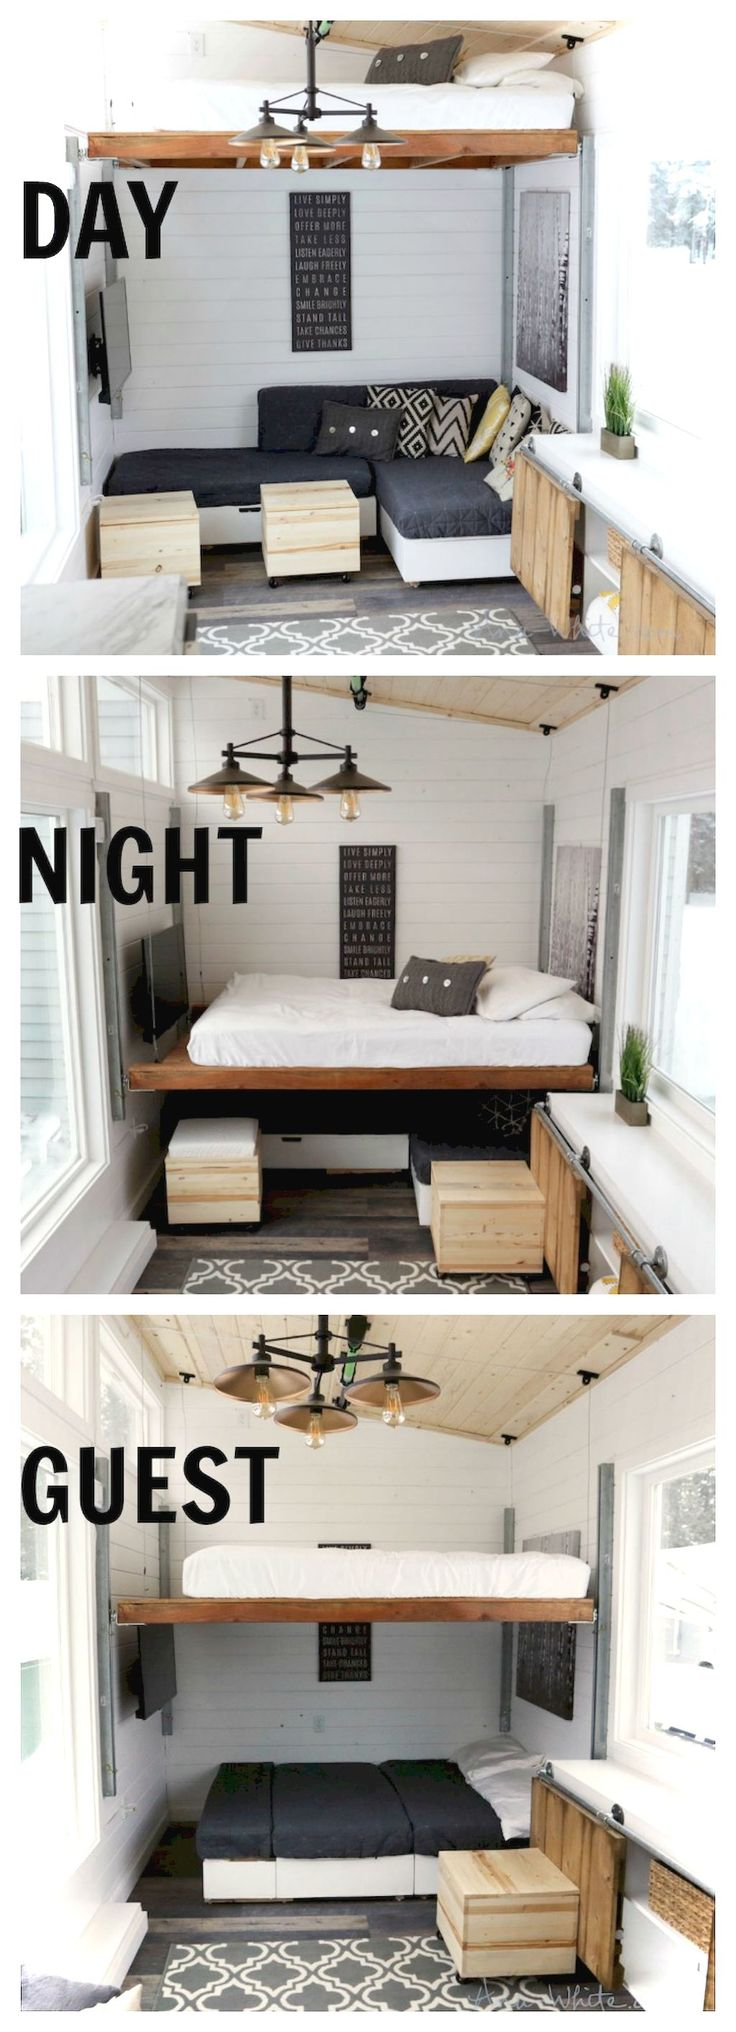 Awesome 85 Awesome Tiny House Interior Ideas https://roomaniac.com/85-awesome-tiny-house-interior-ideas/